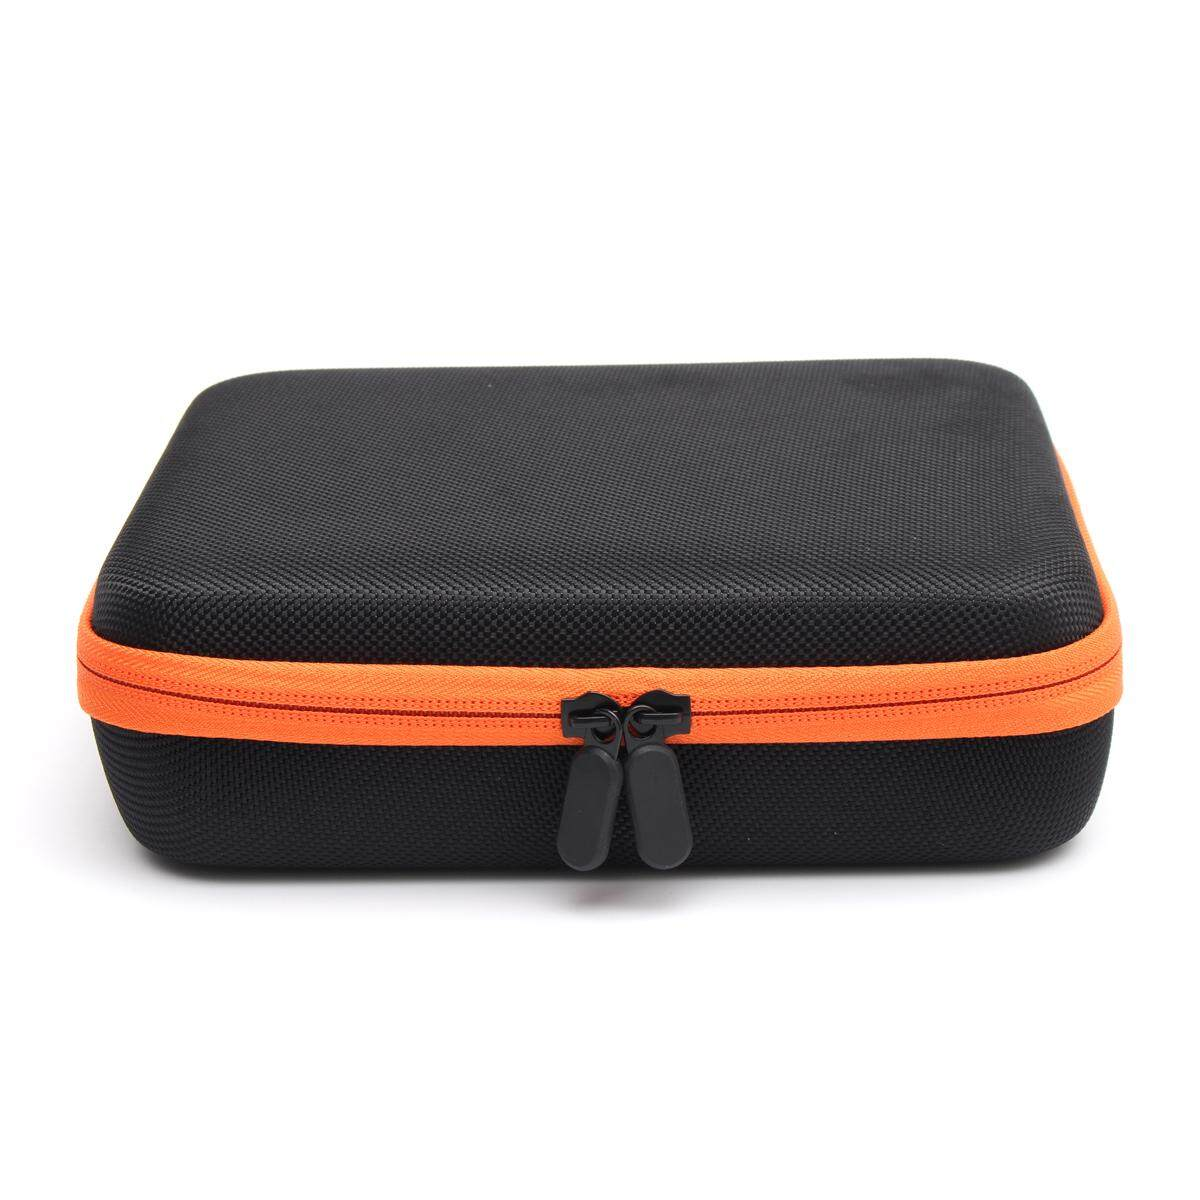 30 Bottle Essential Oil Carry Case 10ML Holder Storage Aromatherapy Hand Bag NEW # Orange - intl